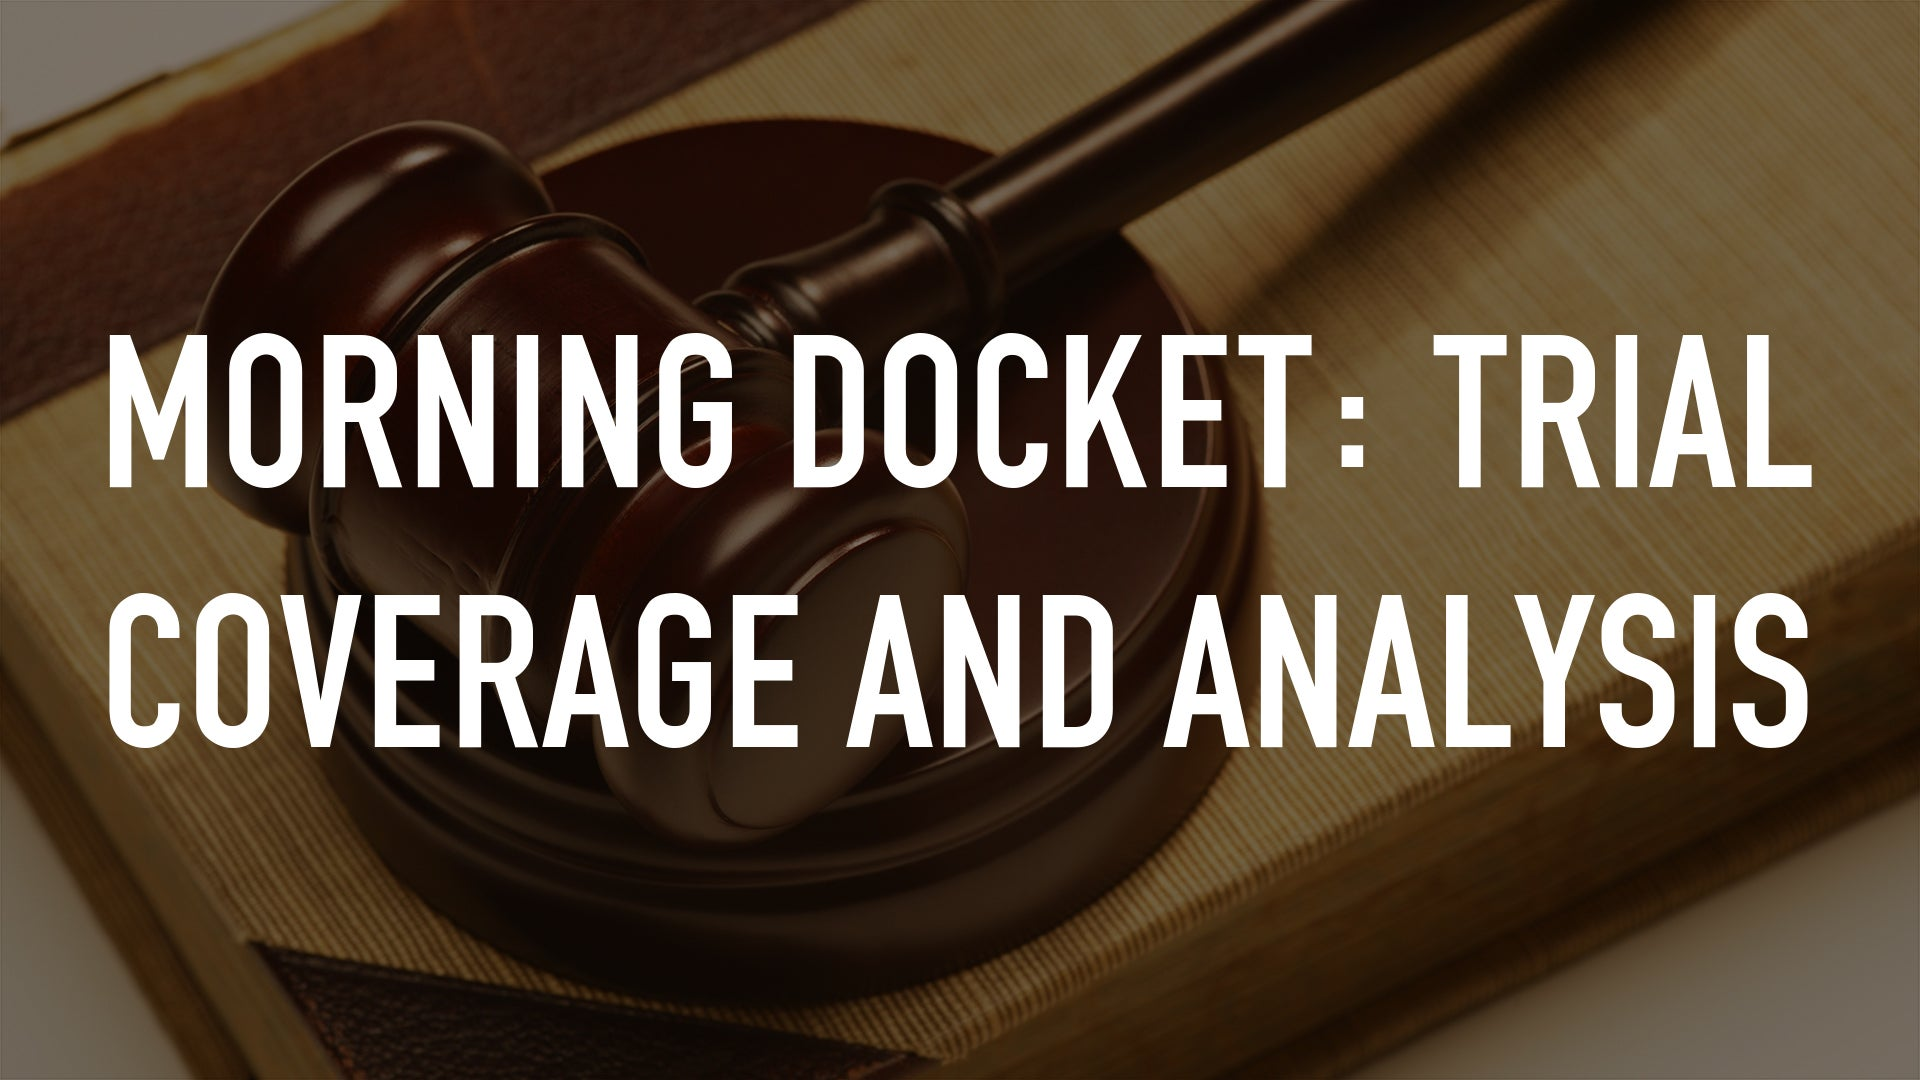 Morning Docket: Trial Coverage and Analysis